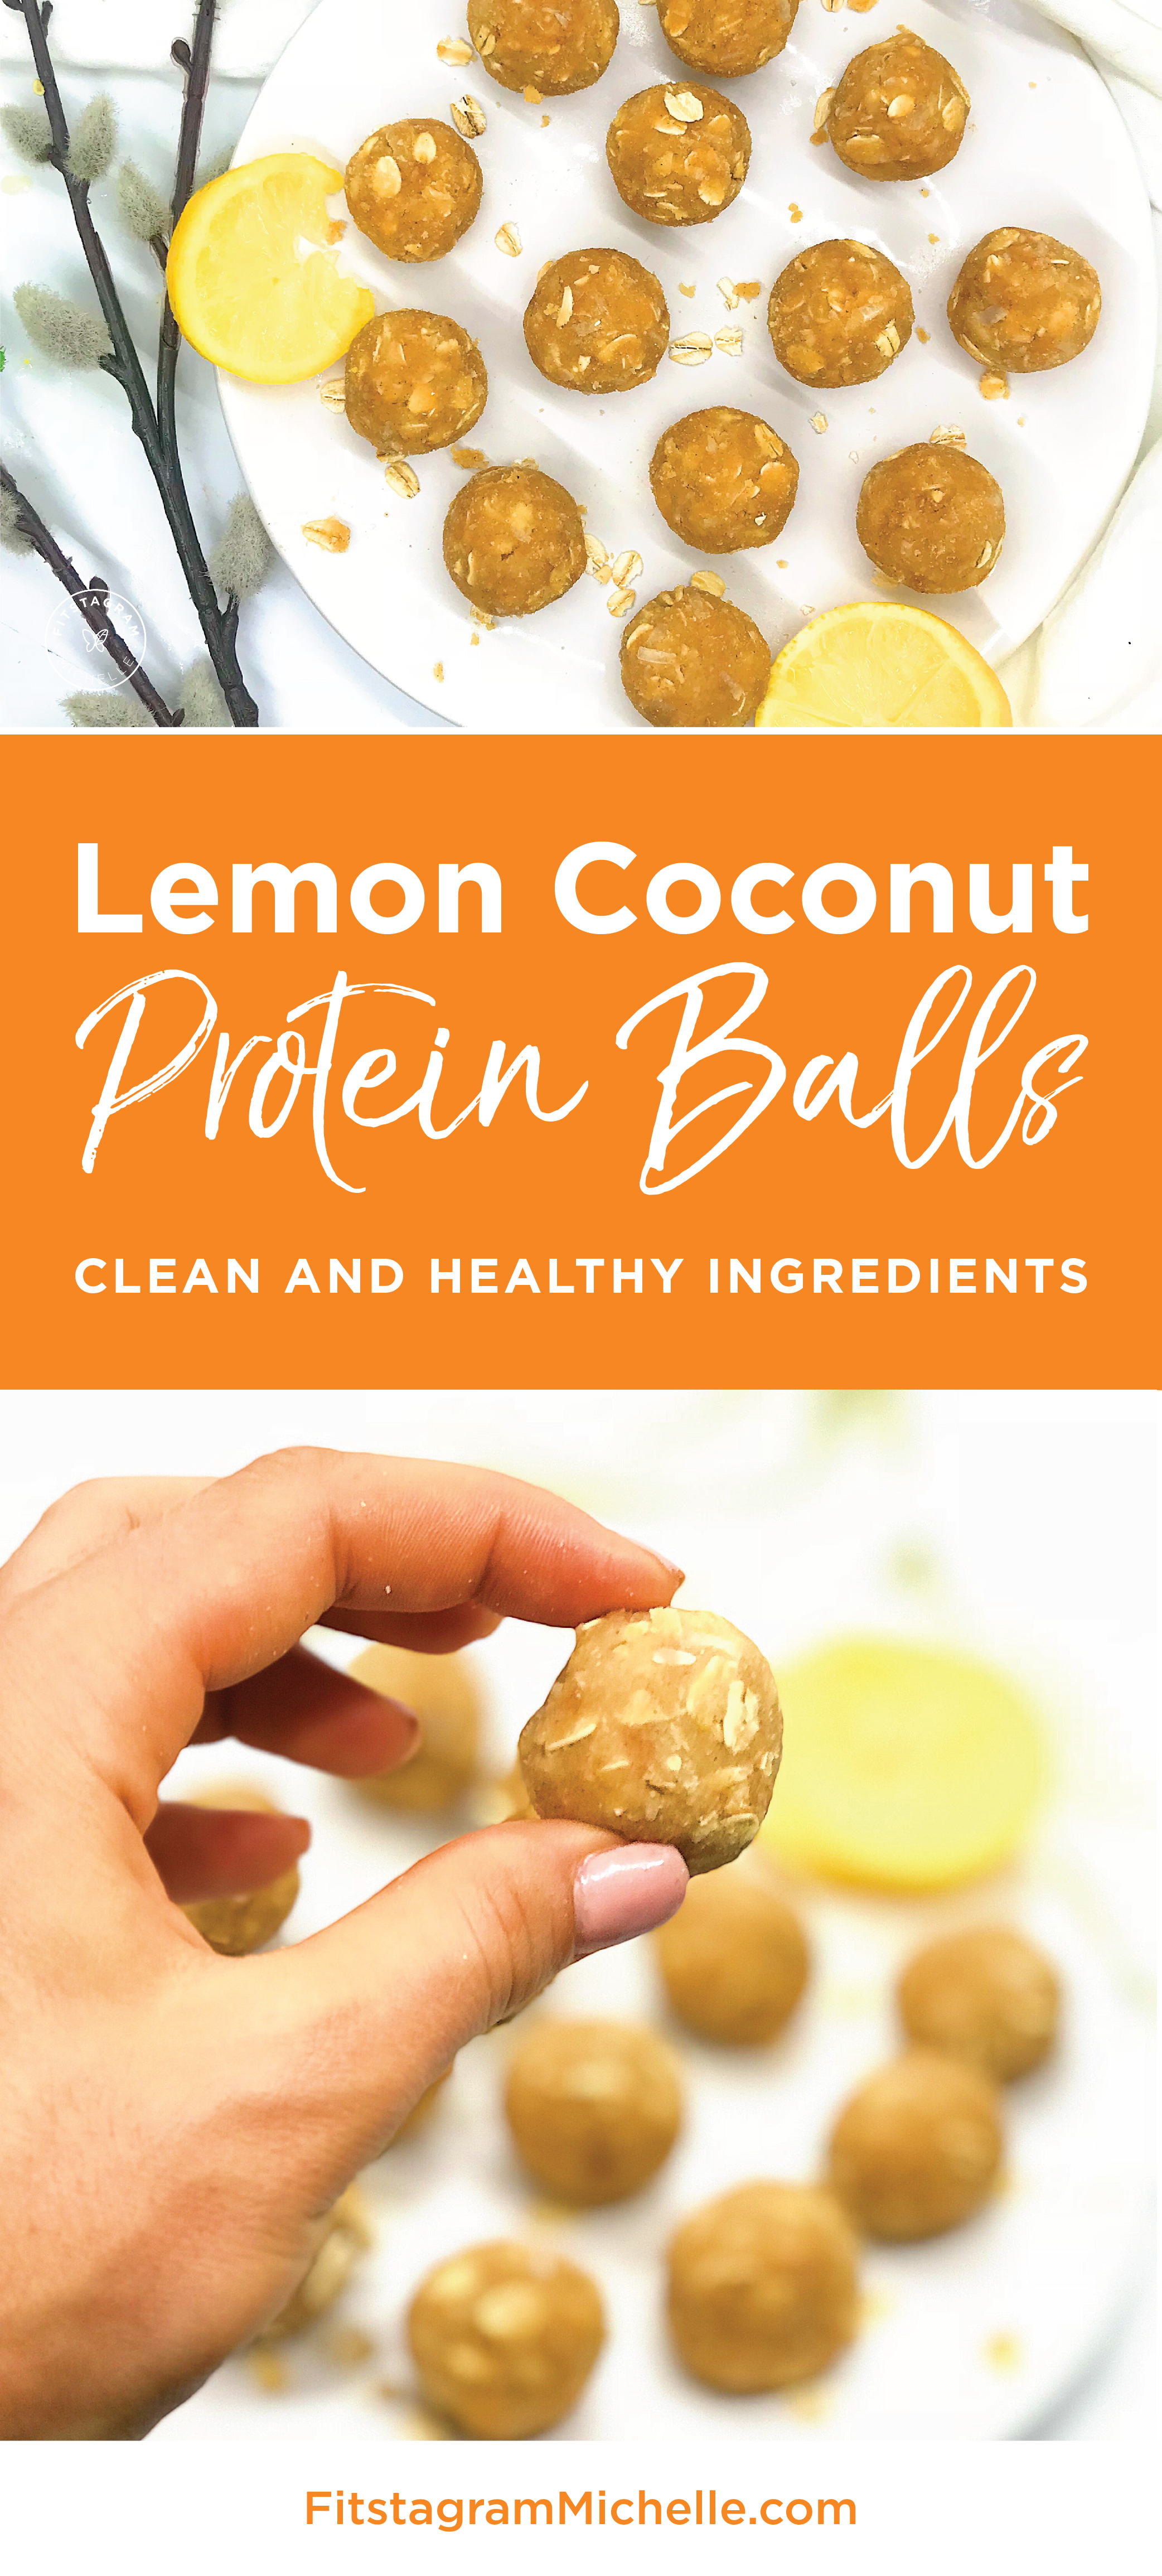 Lemon Coconut Protein Balls makes the most satisfying snack or clean dessert. They are very refreshing and packed with healthy ingredients. No blender needed in this recipe!